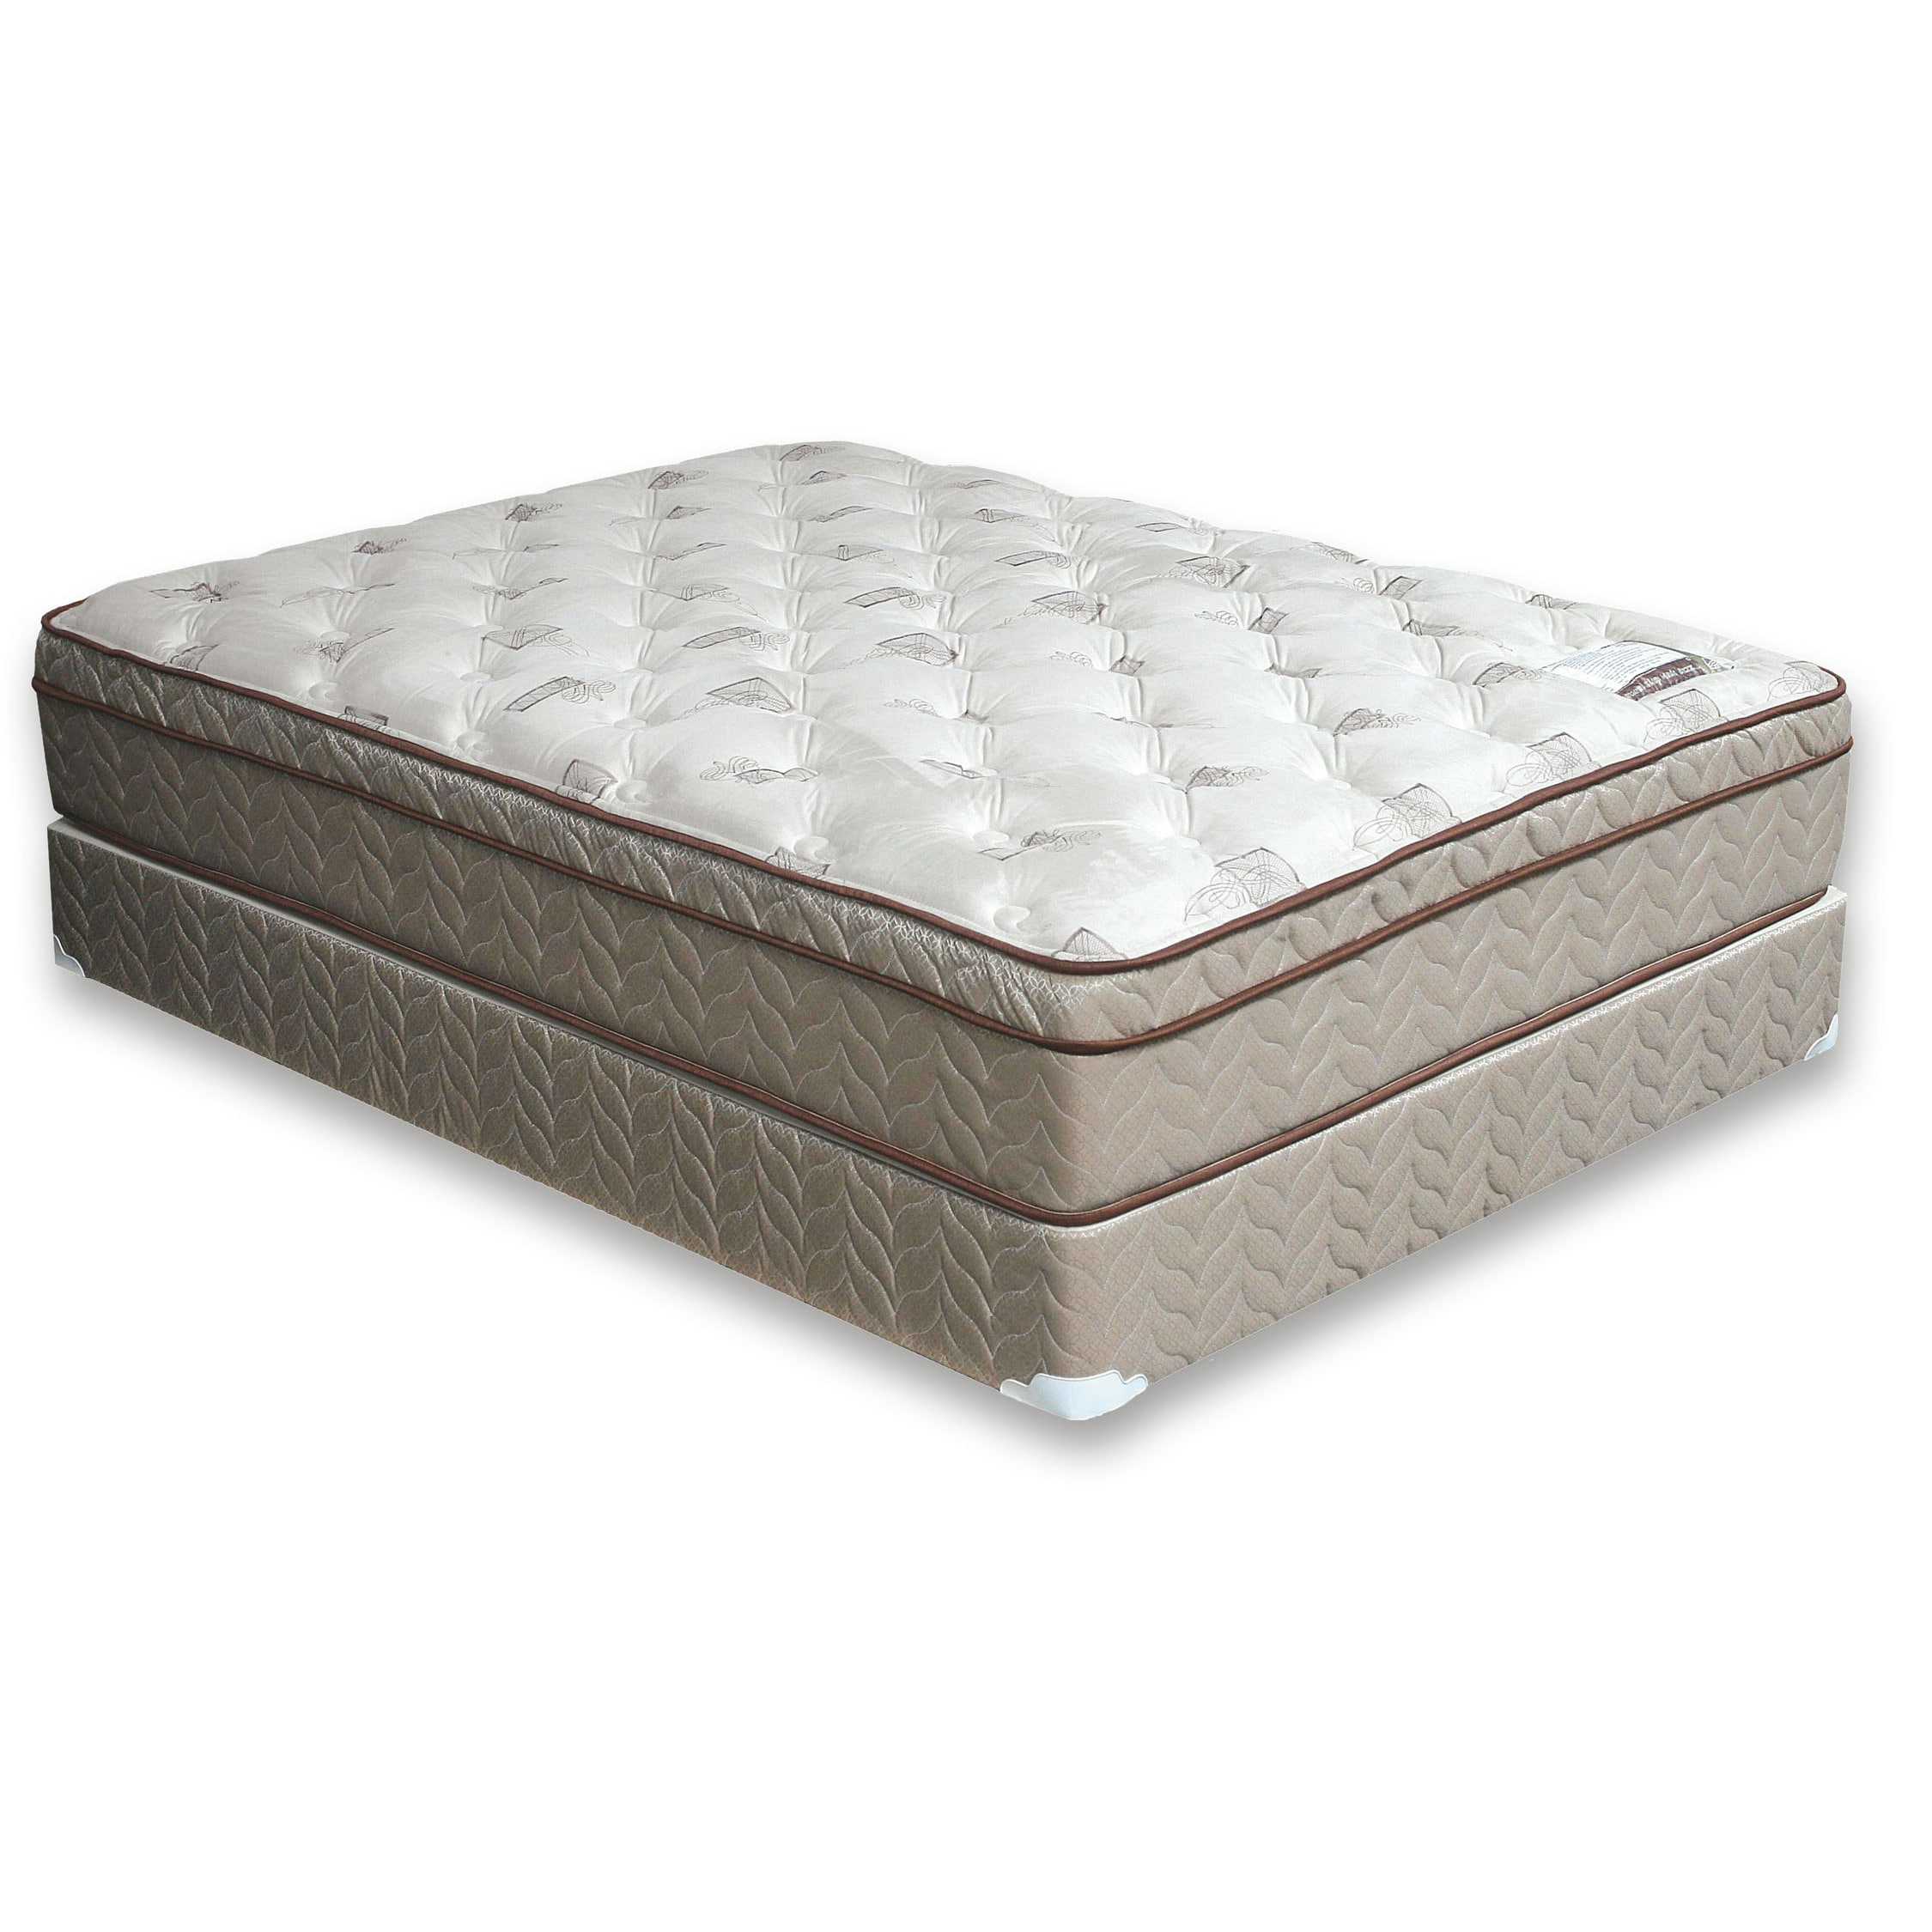 Furniture of America Dreamax Contemporary Eastern King Grey Euro Top Mattress by FOA